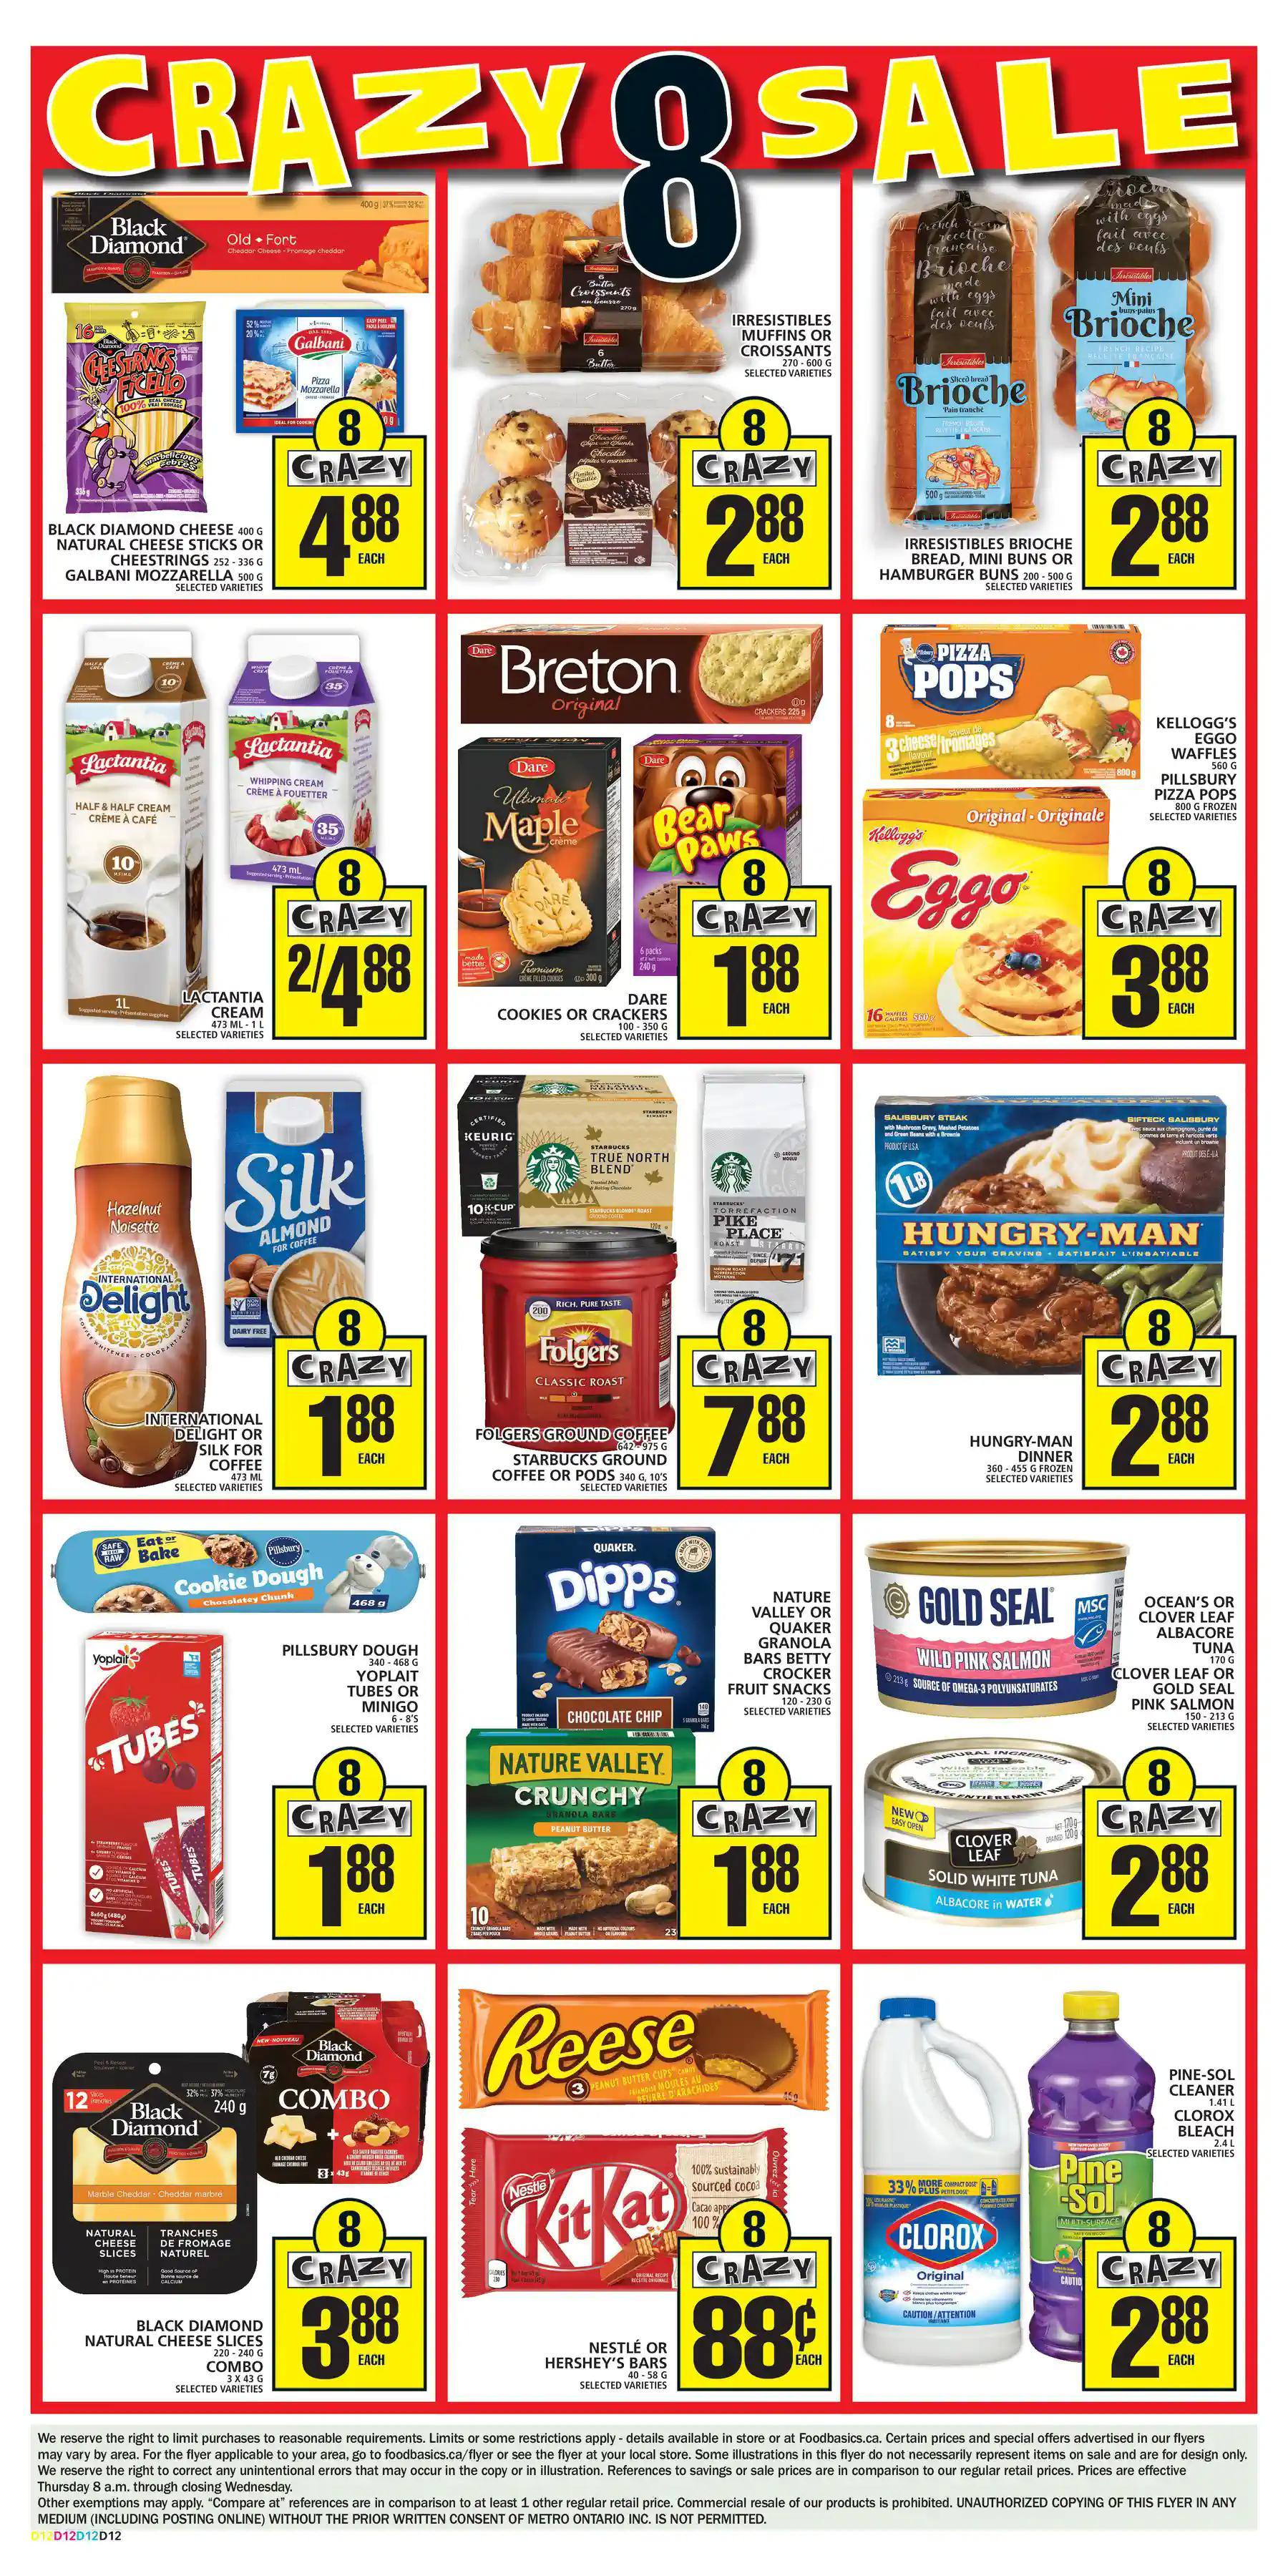 Food Basics - Weekly Flyer Specials - Page 14